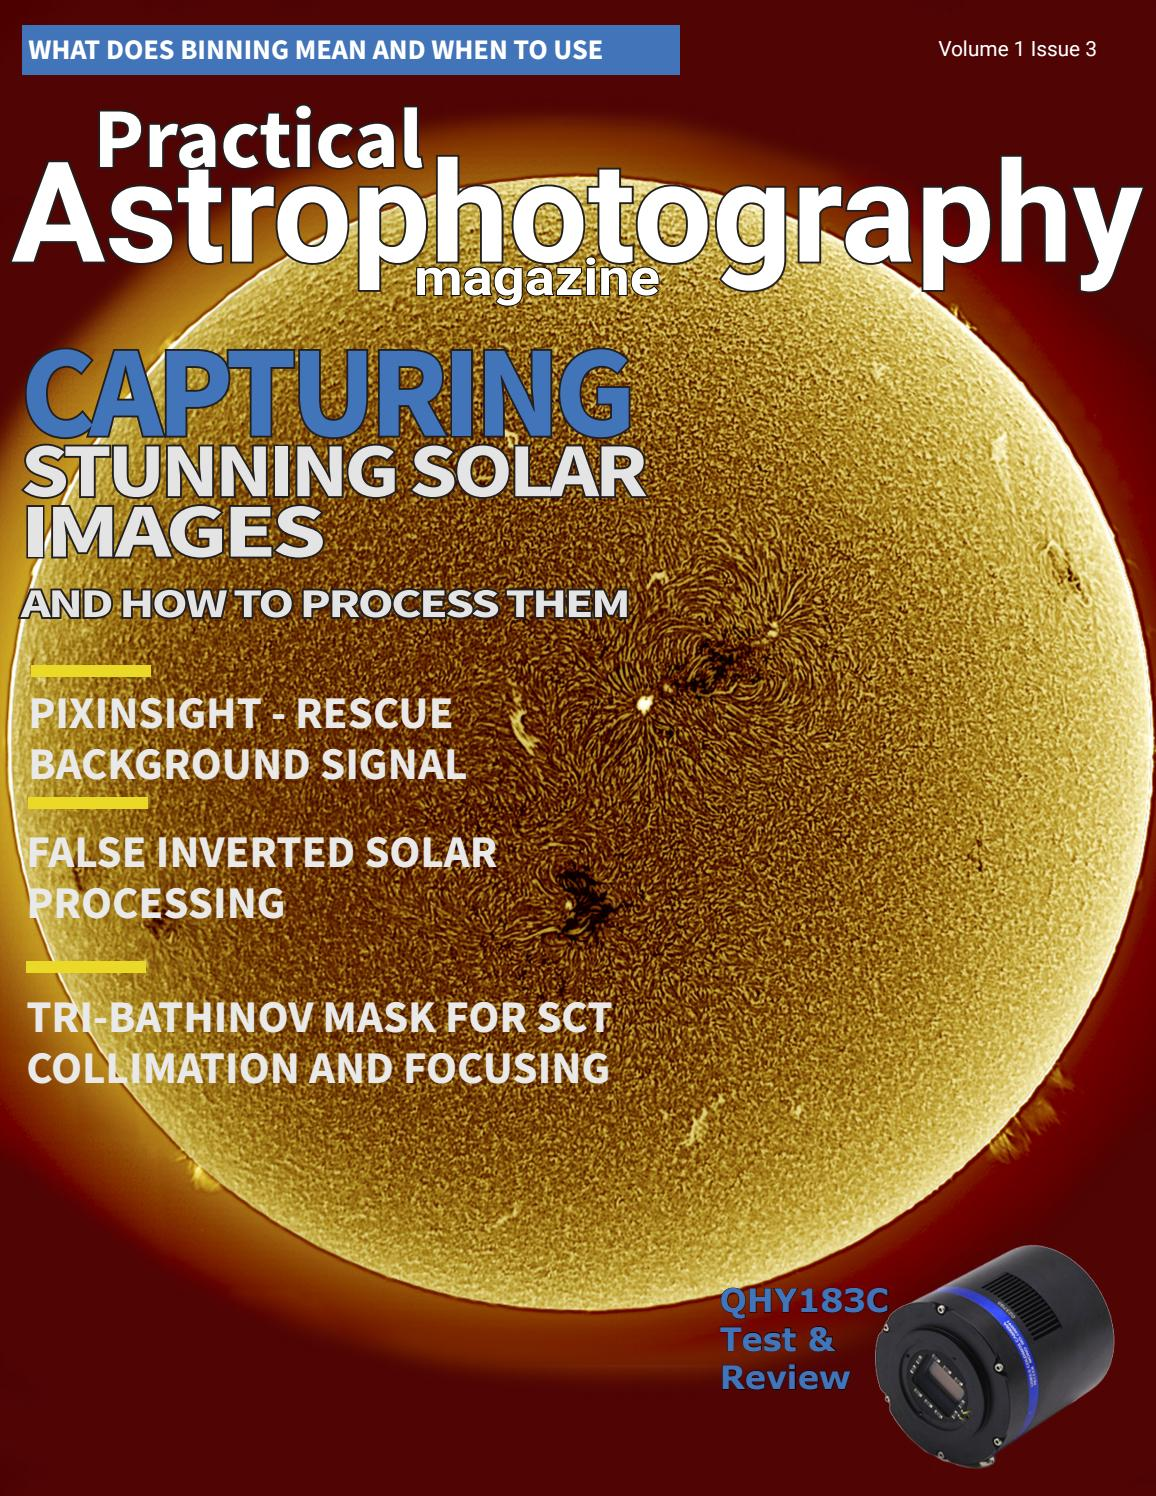 Practical Astrophotography Volume 1 Issue 3 by Practical